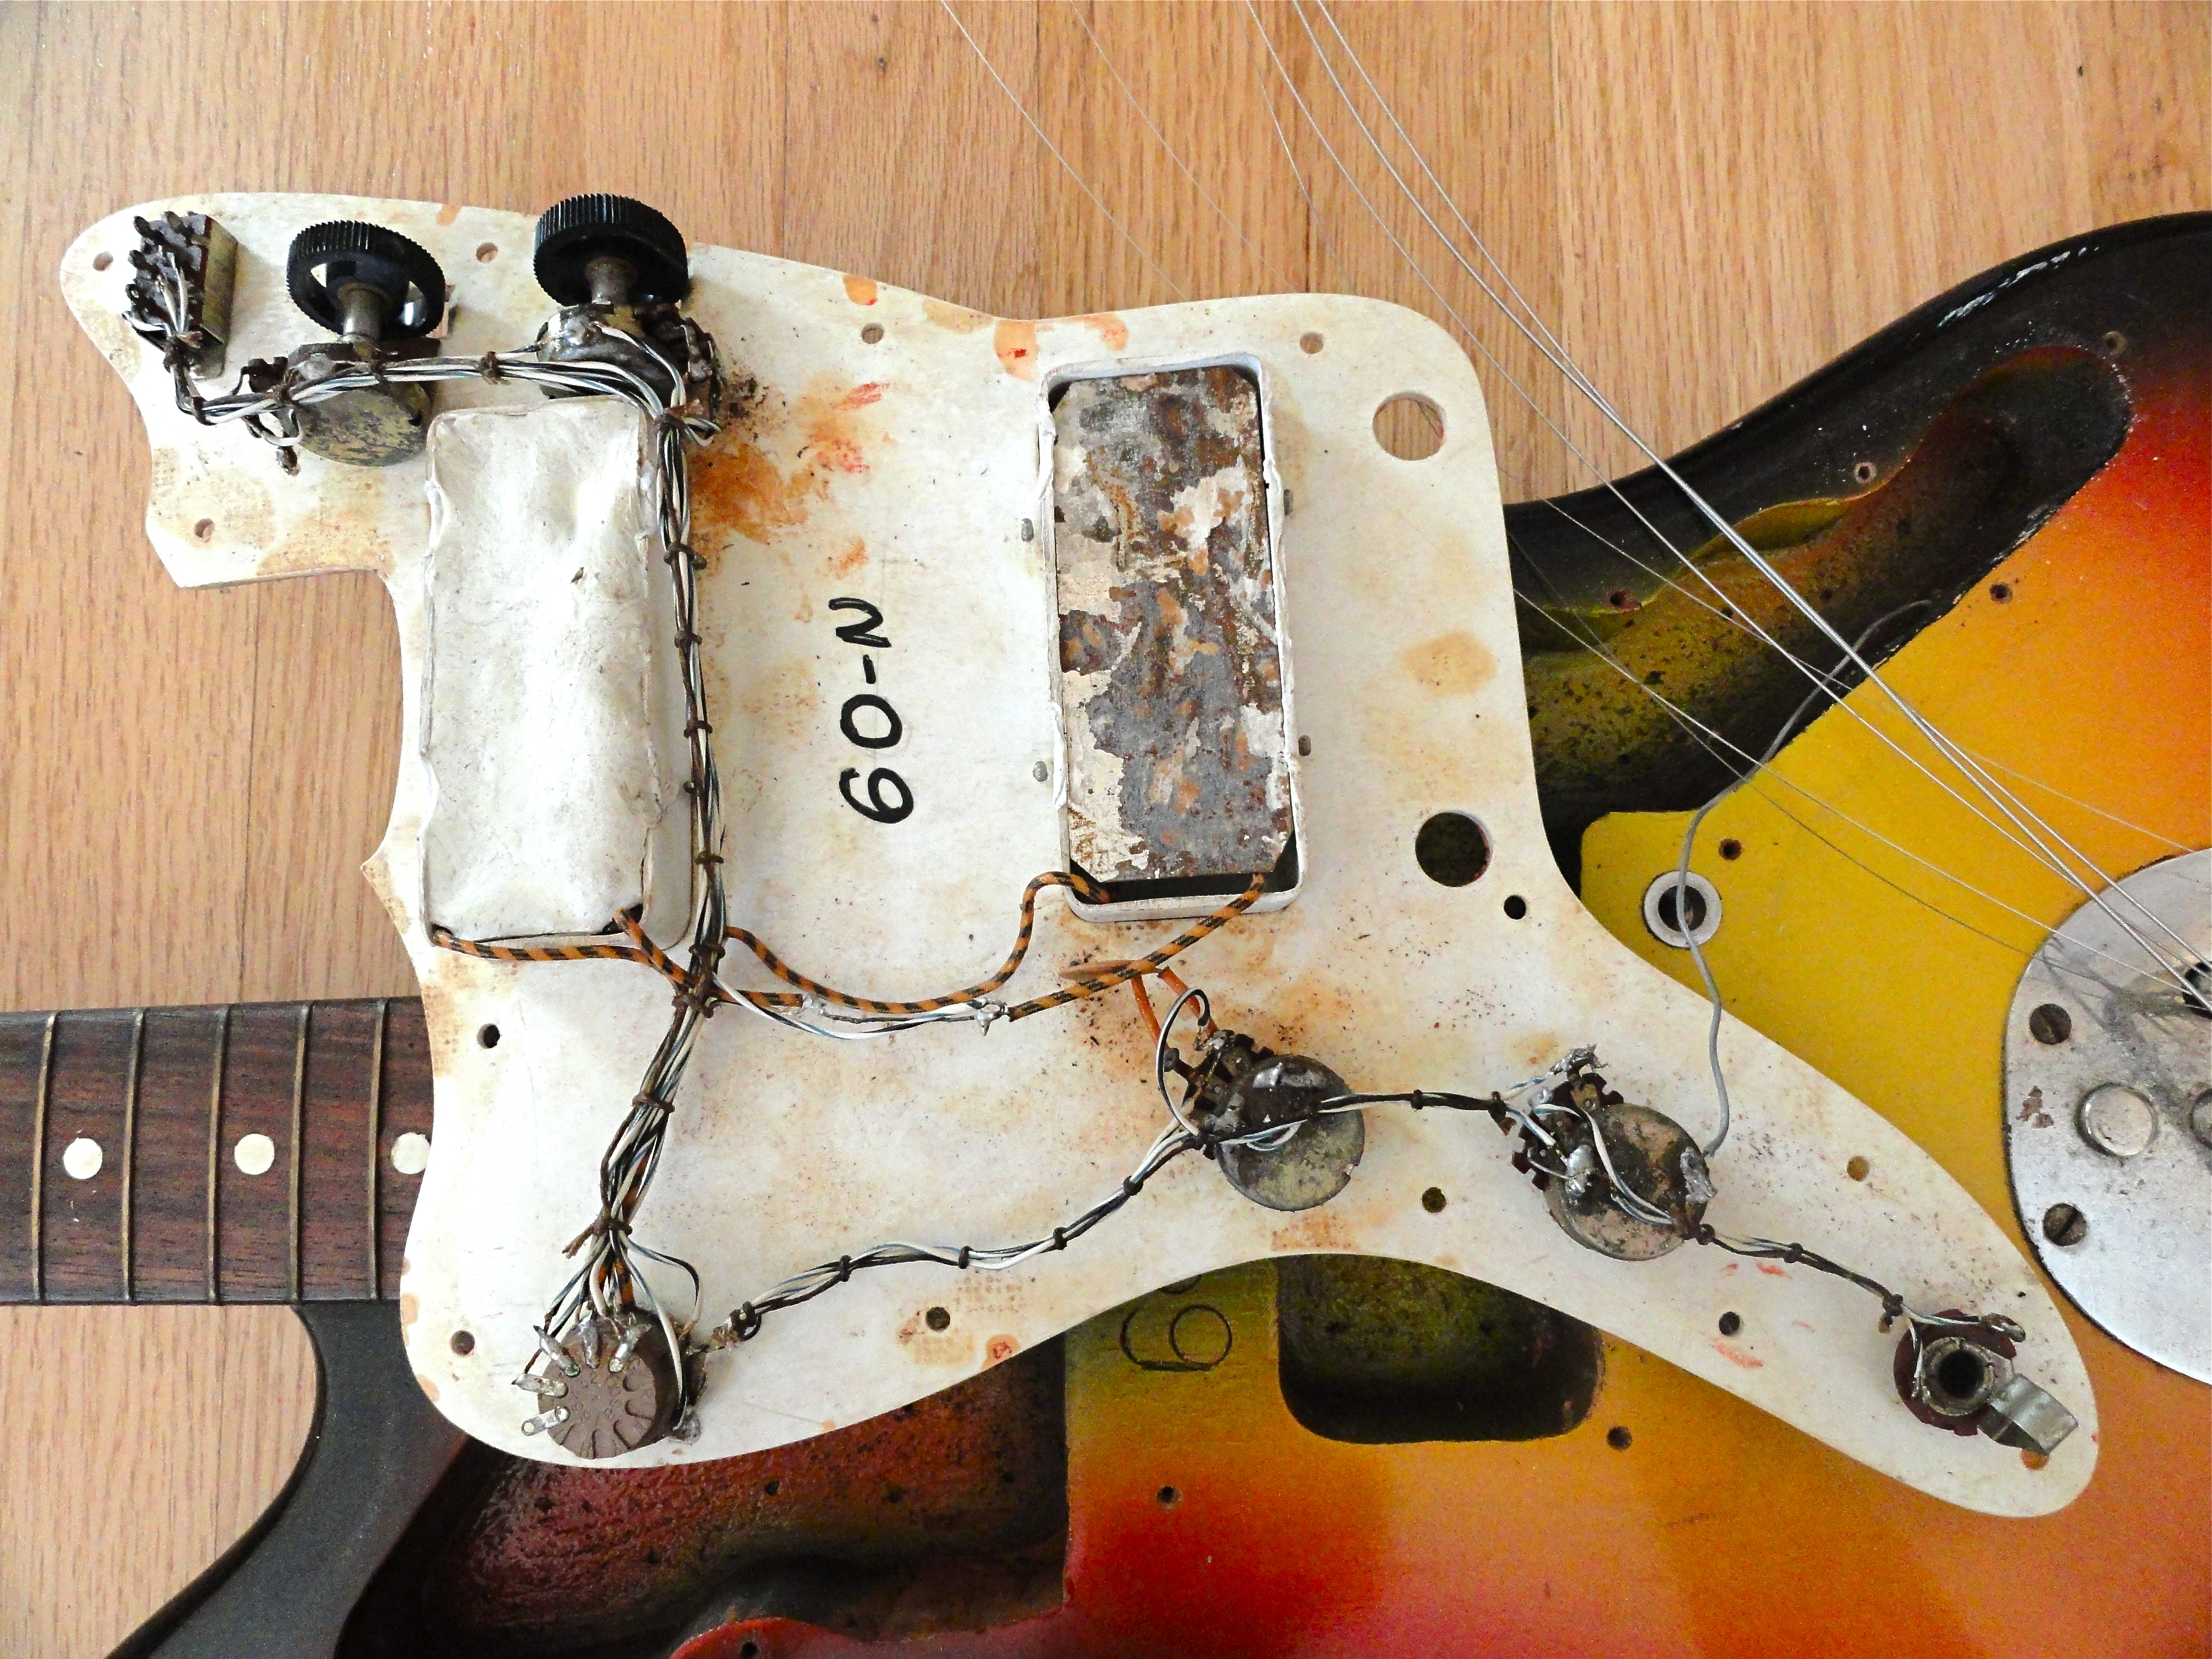 electronically the guitar is an elegant mess and while both pickups work the stock five way rotary switch which is in the place of the normal three way